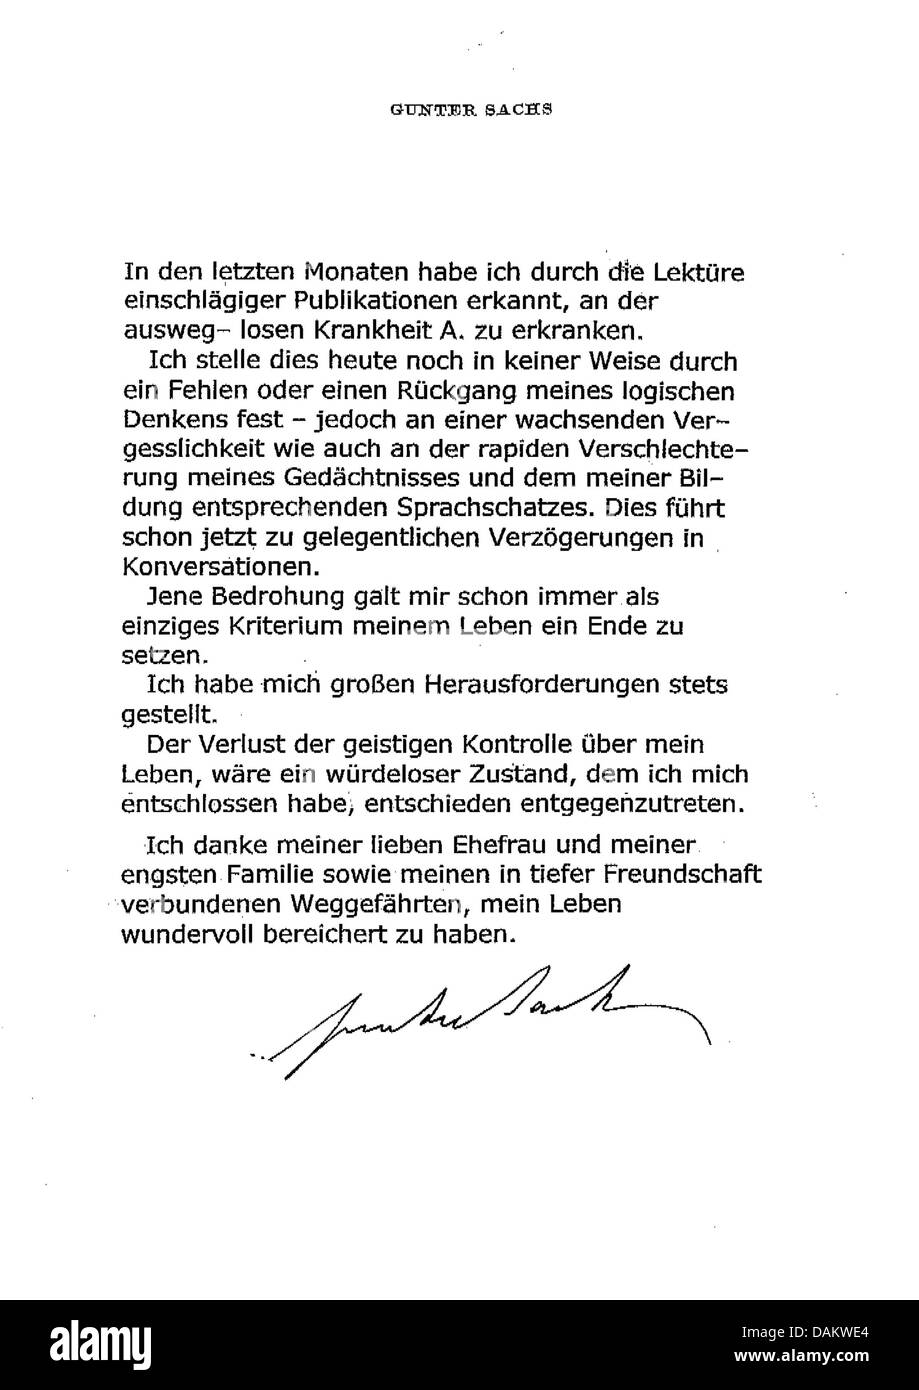 A facsimile of the farewell letter of Gunter Sachs, who killed himself because of a severe illness, is pictured Stock Photo